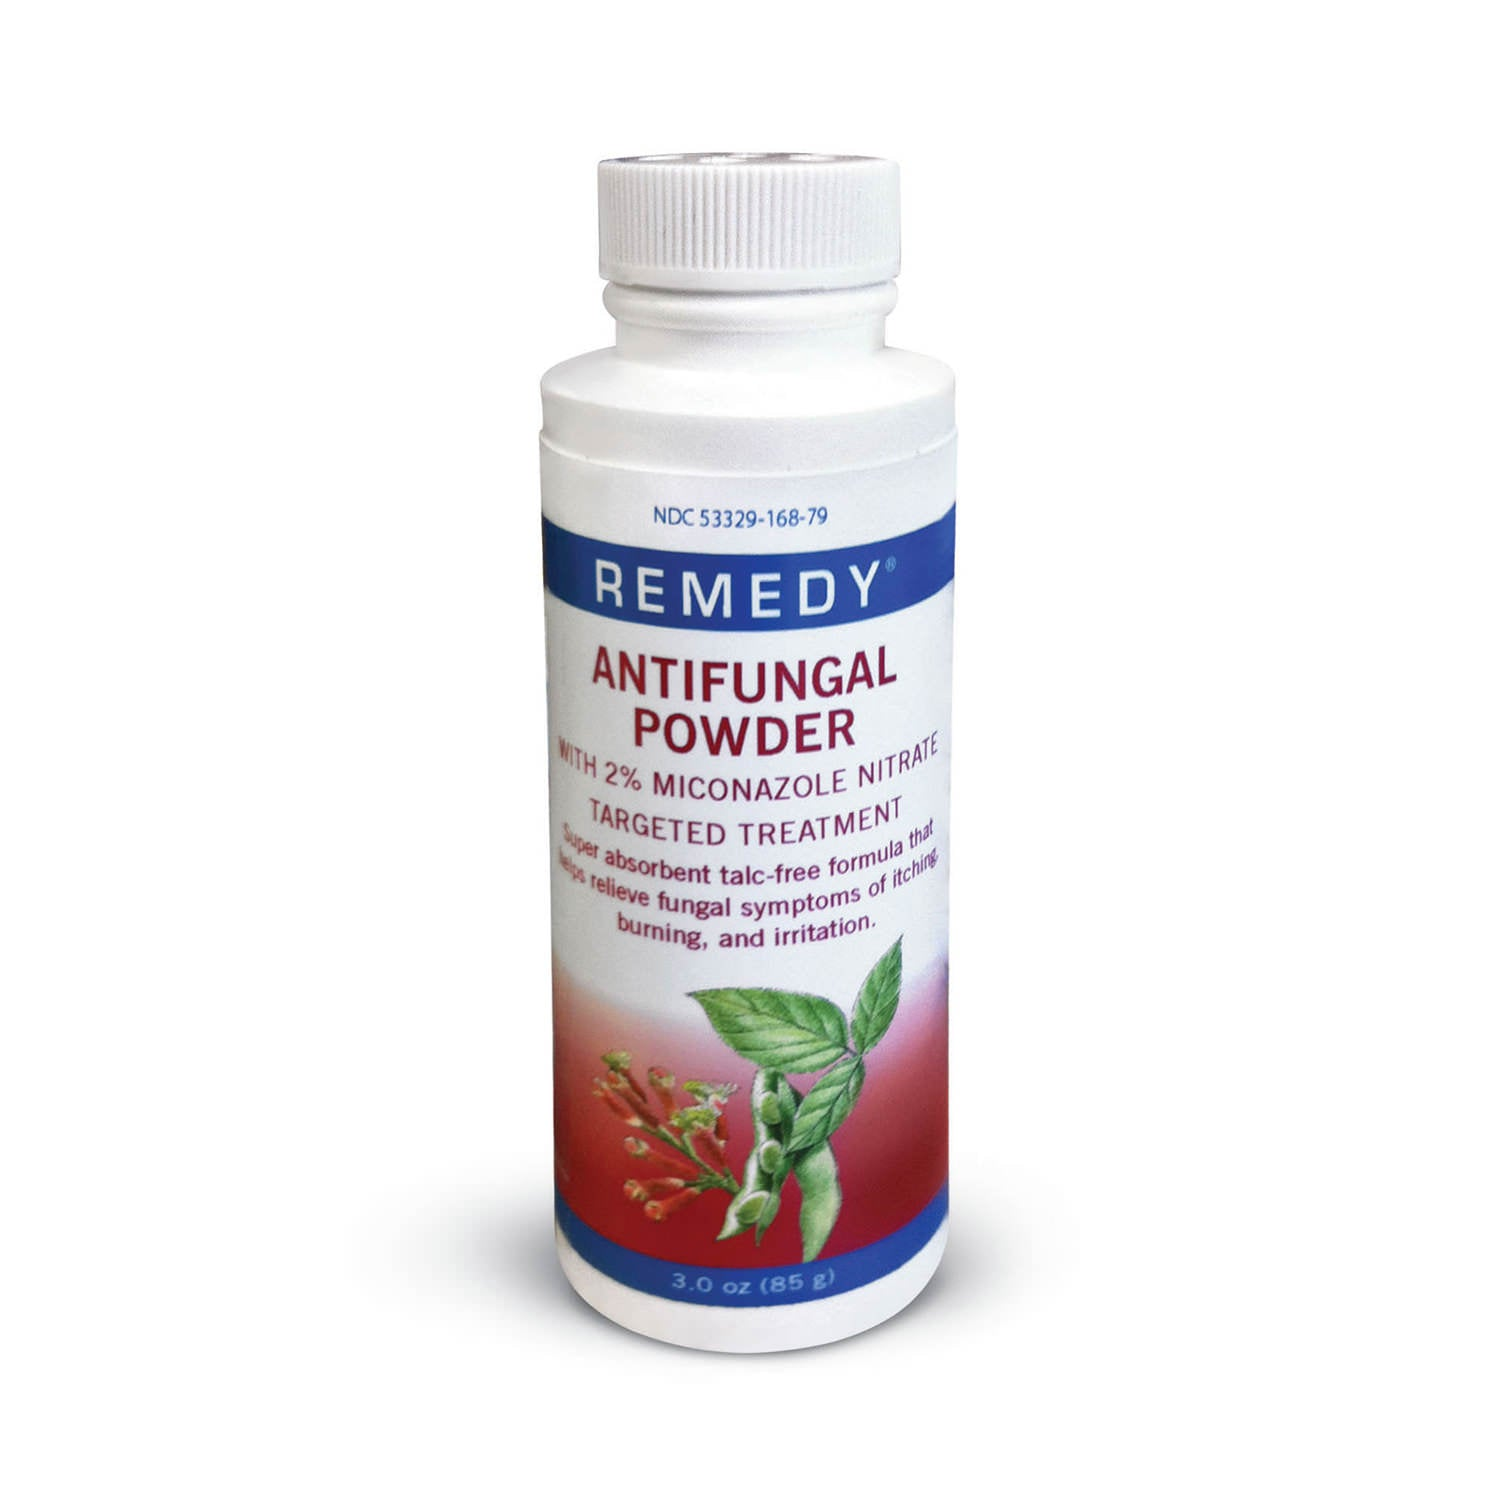 Remedy Antifungal Powder - 3 oz.